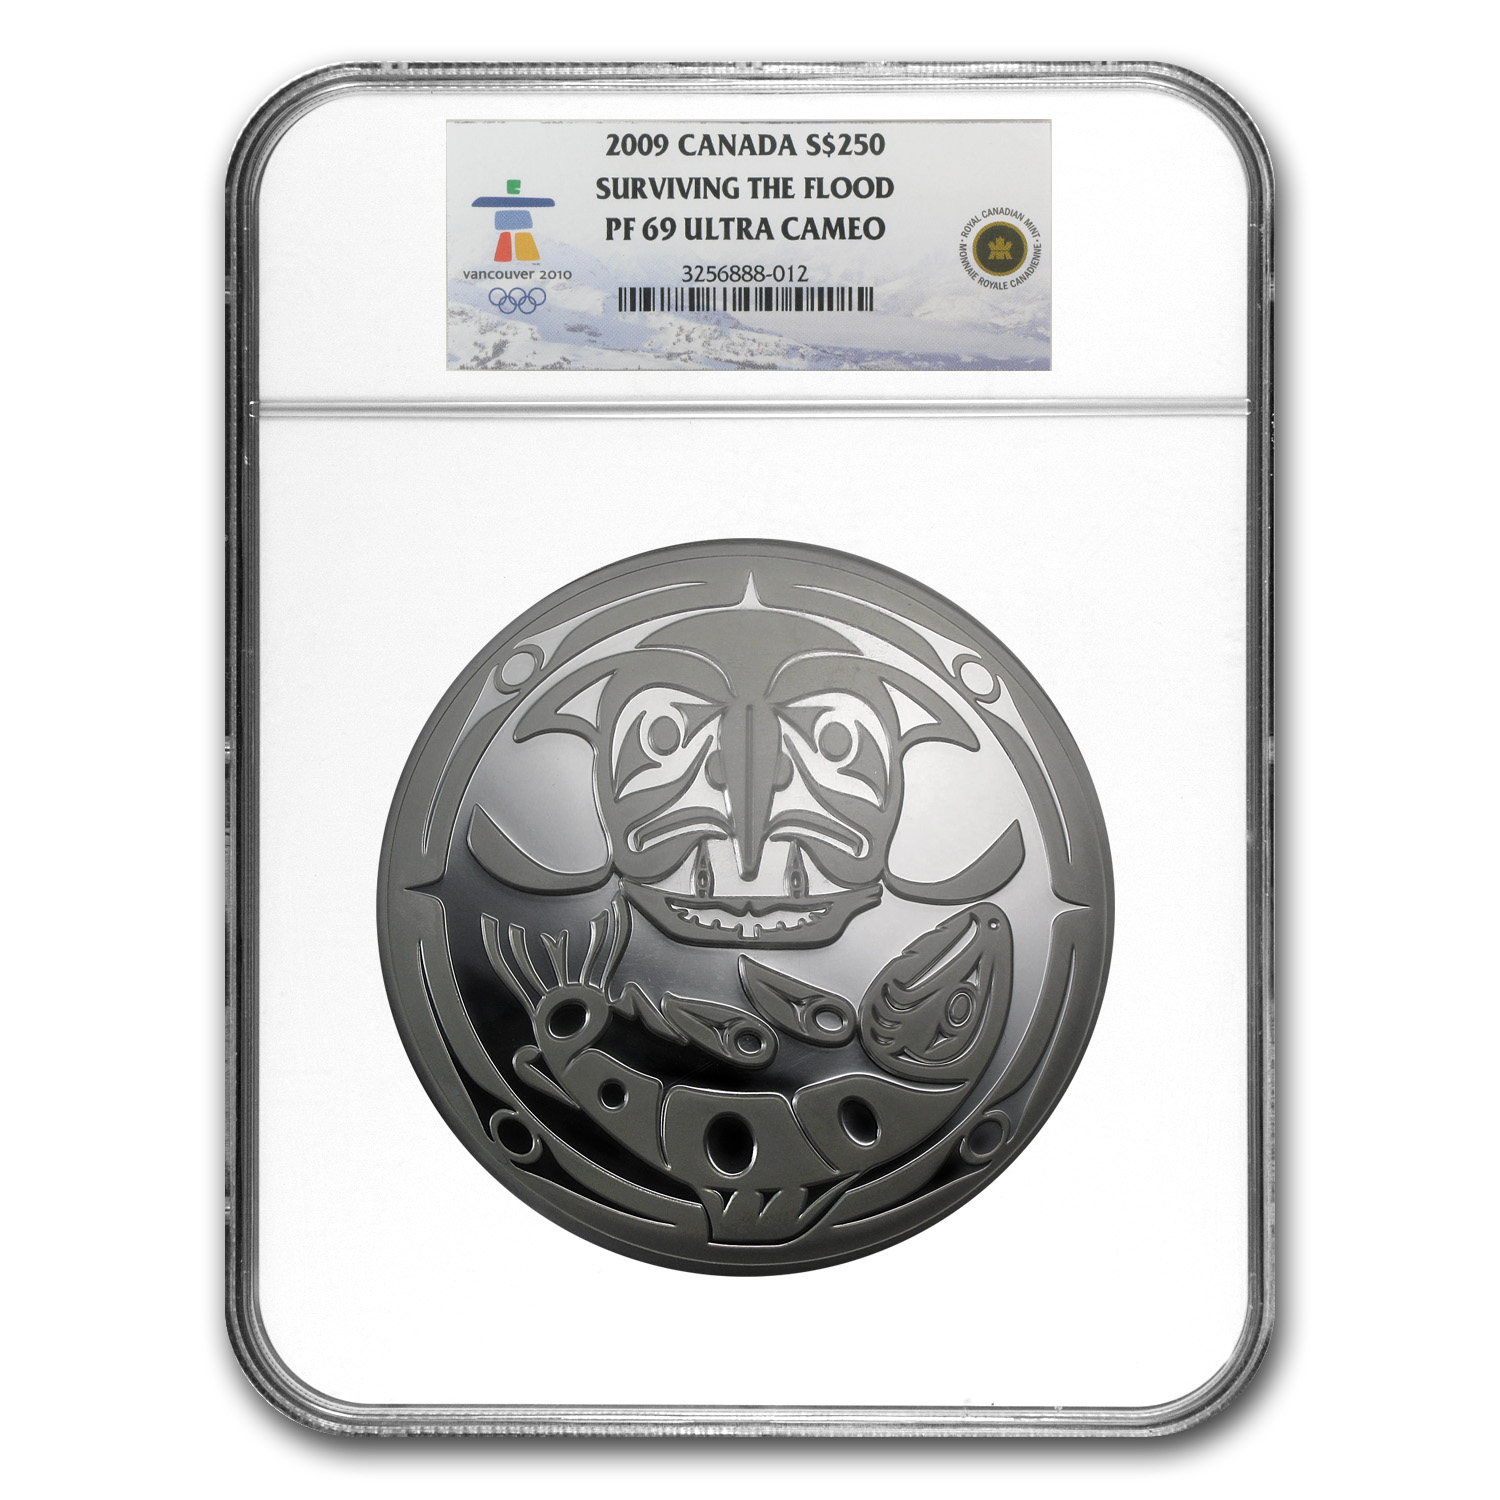 2009 Canada 1 kilo Silver $250 Surviving the Flood PF-69 NGC